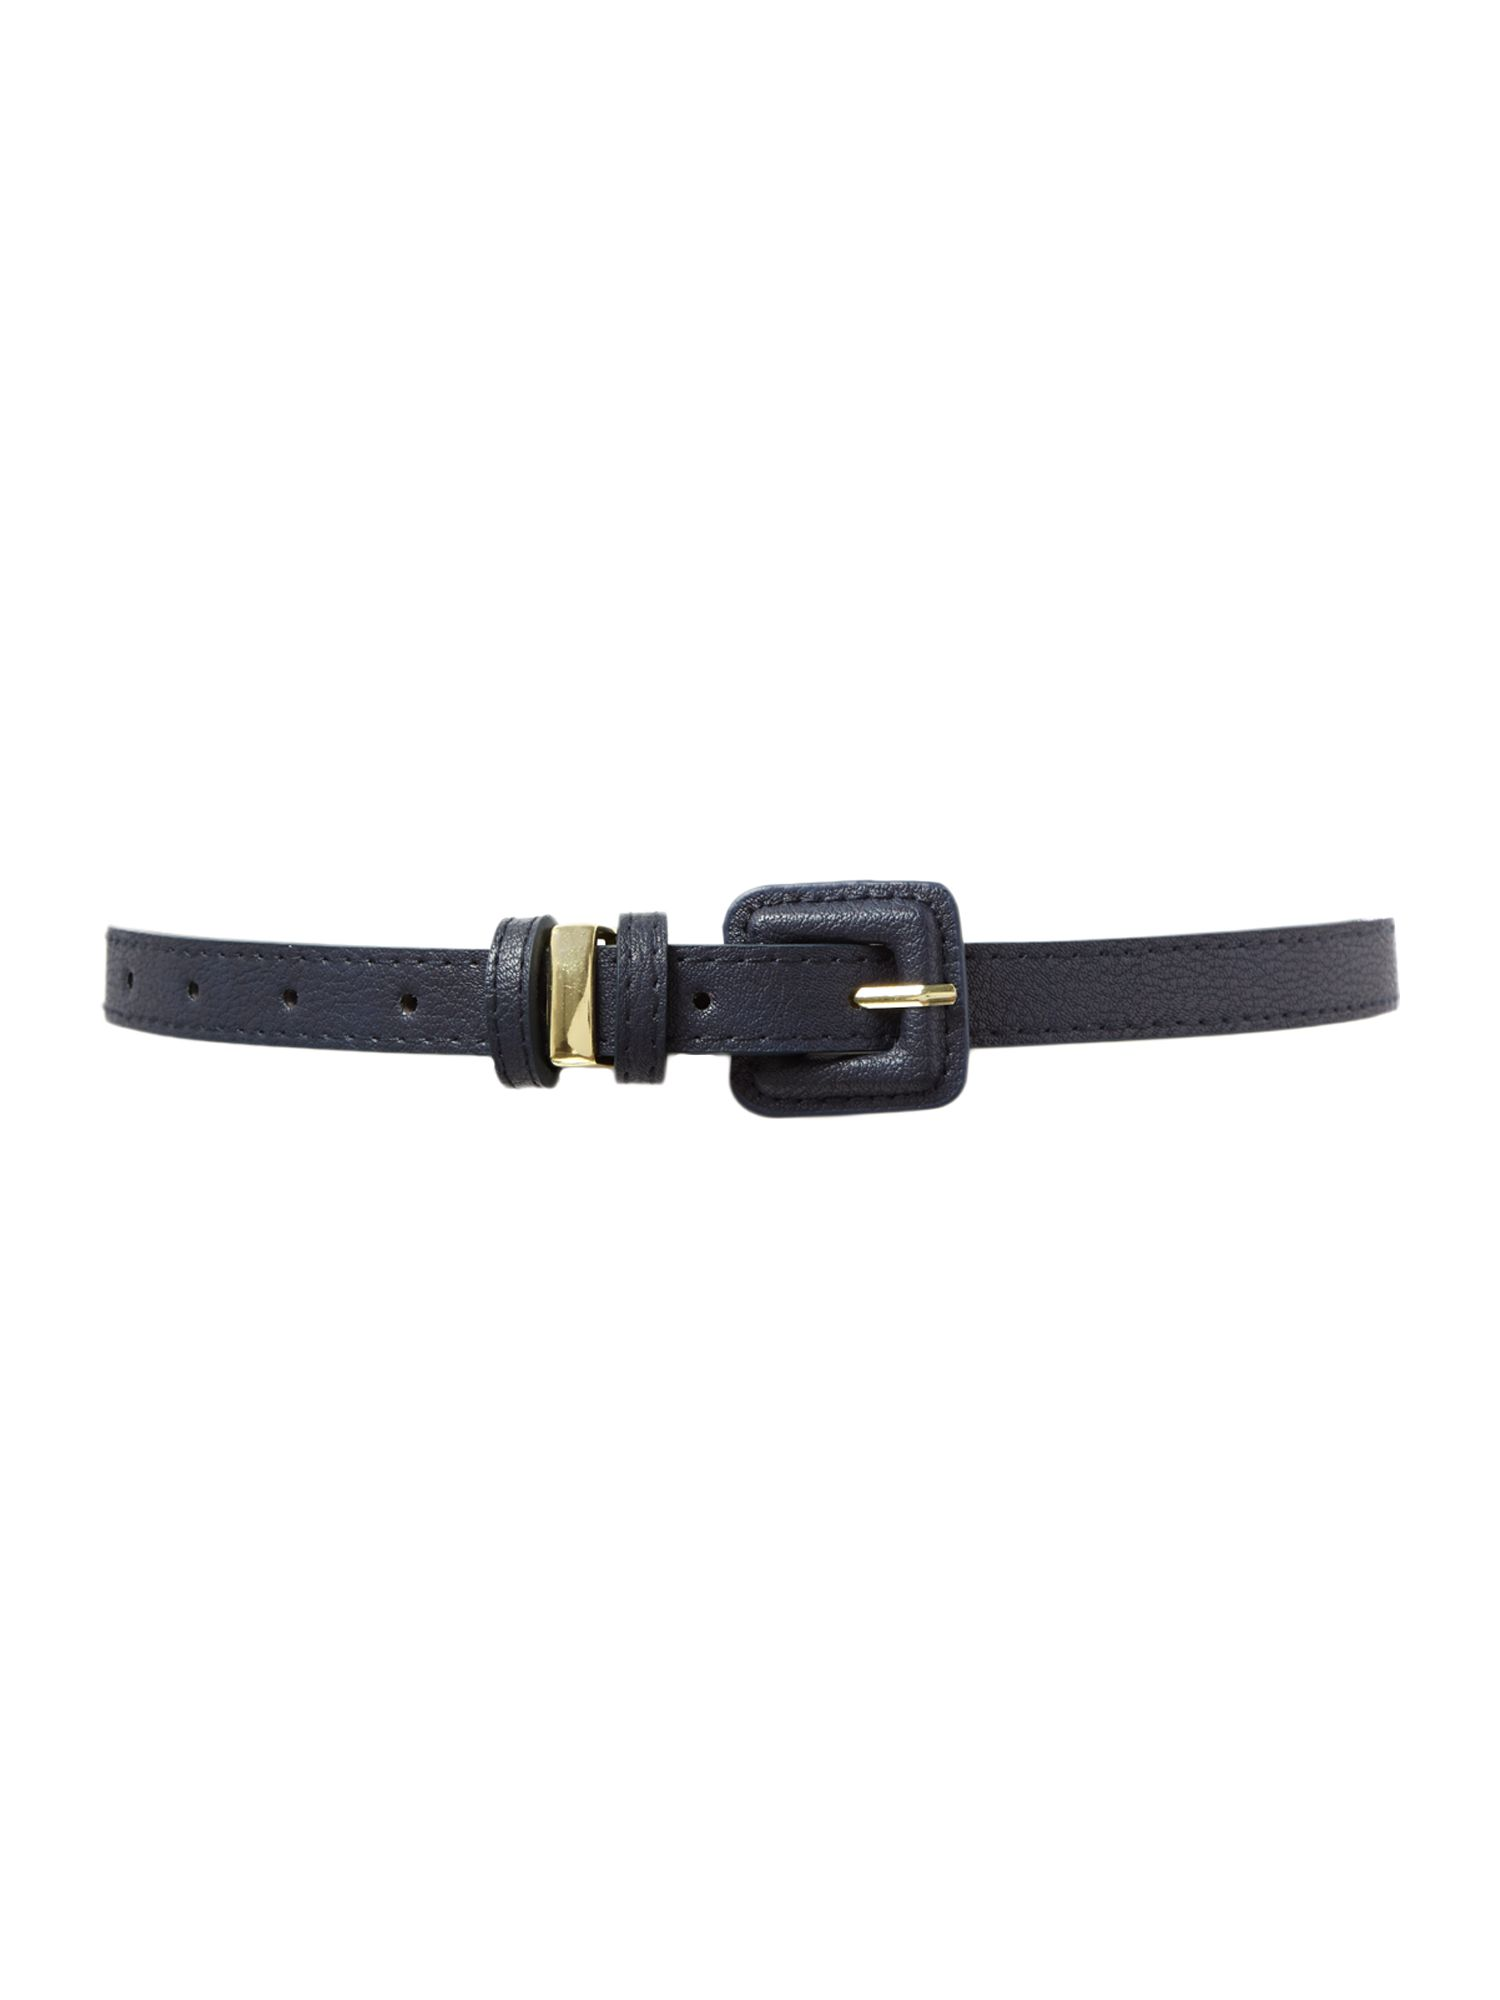 Covered buckle trouser belt